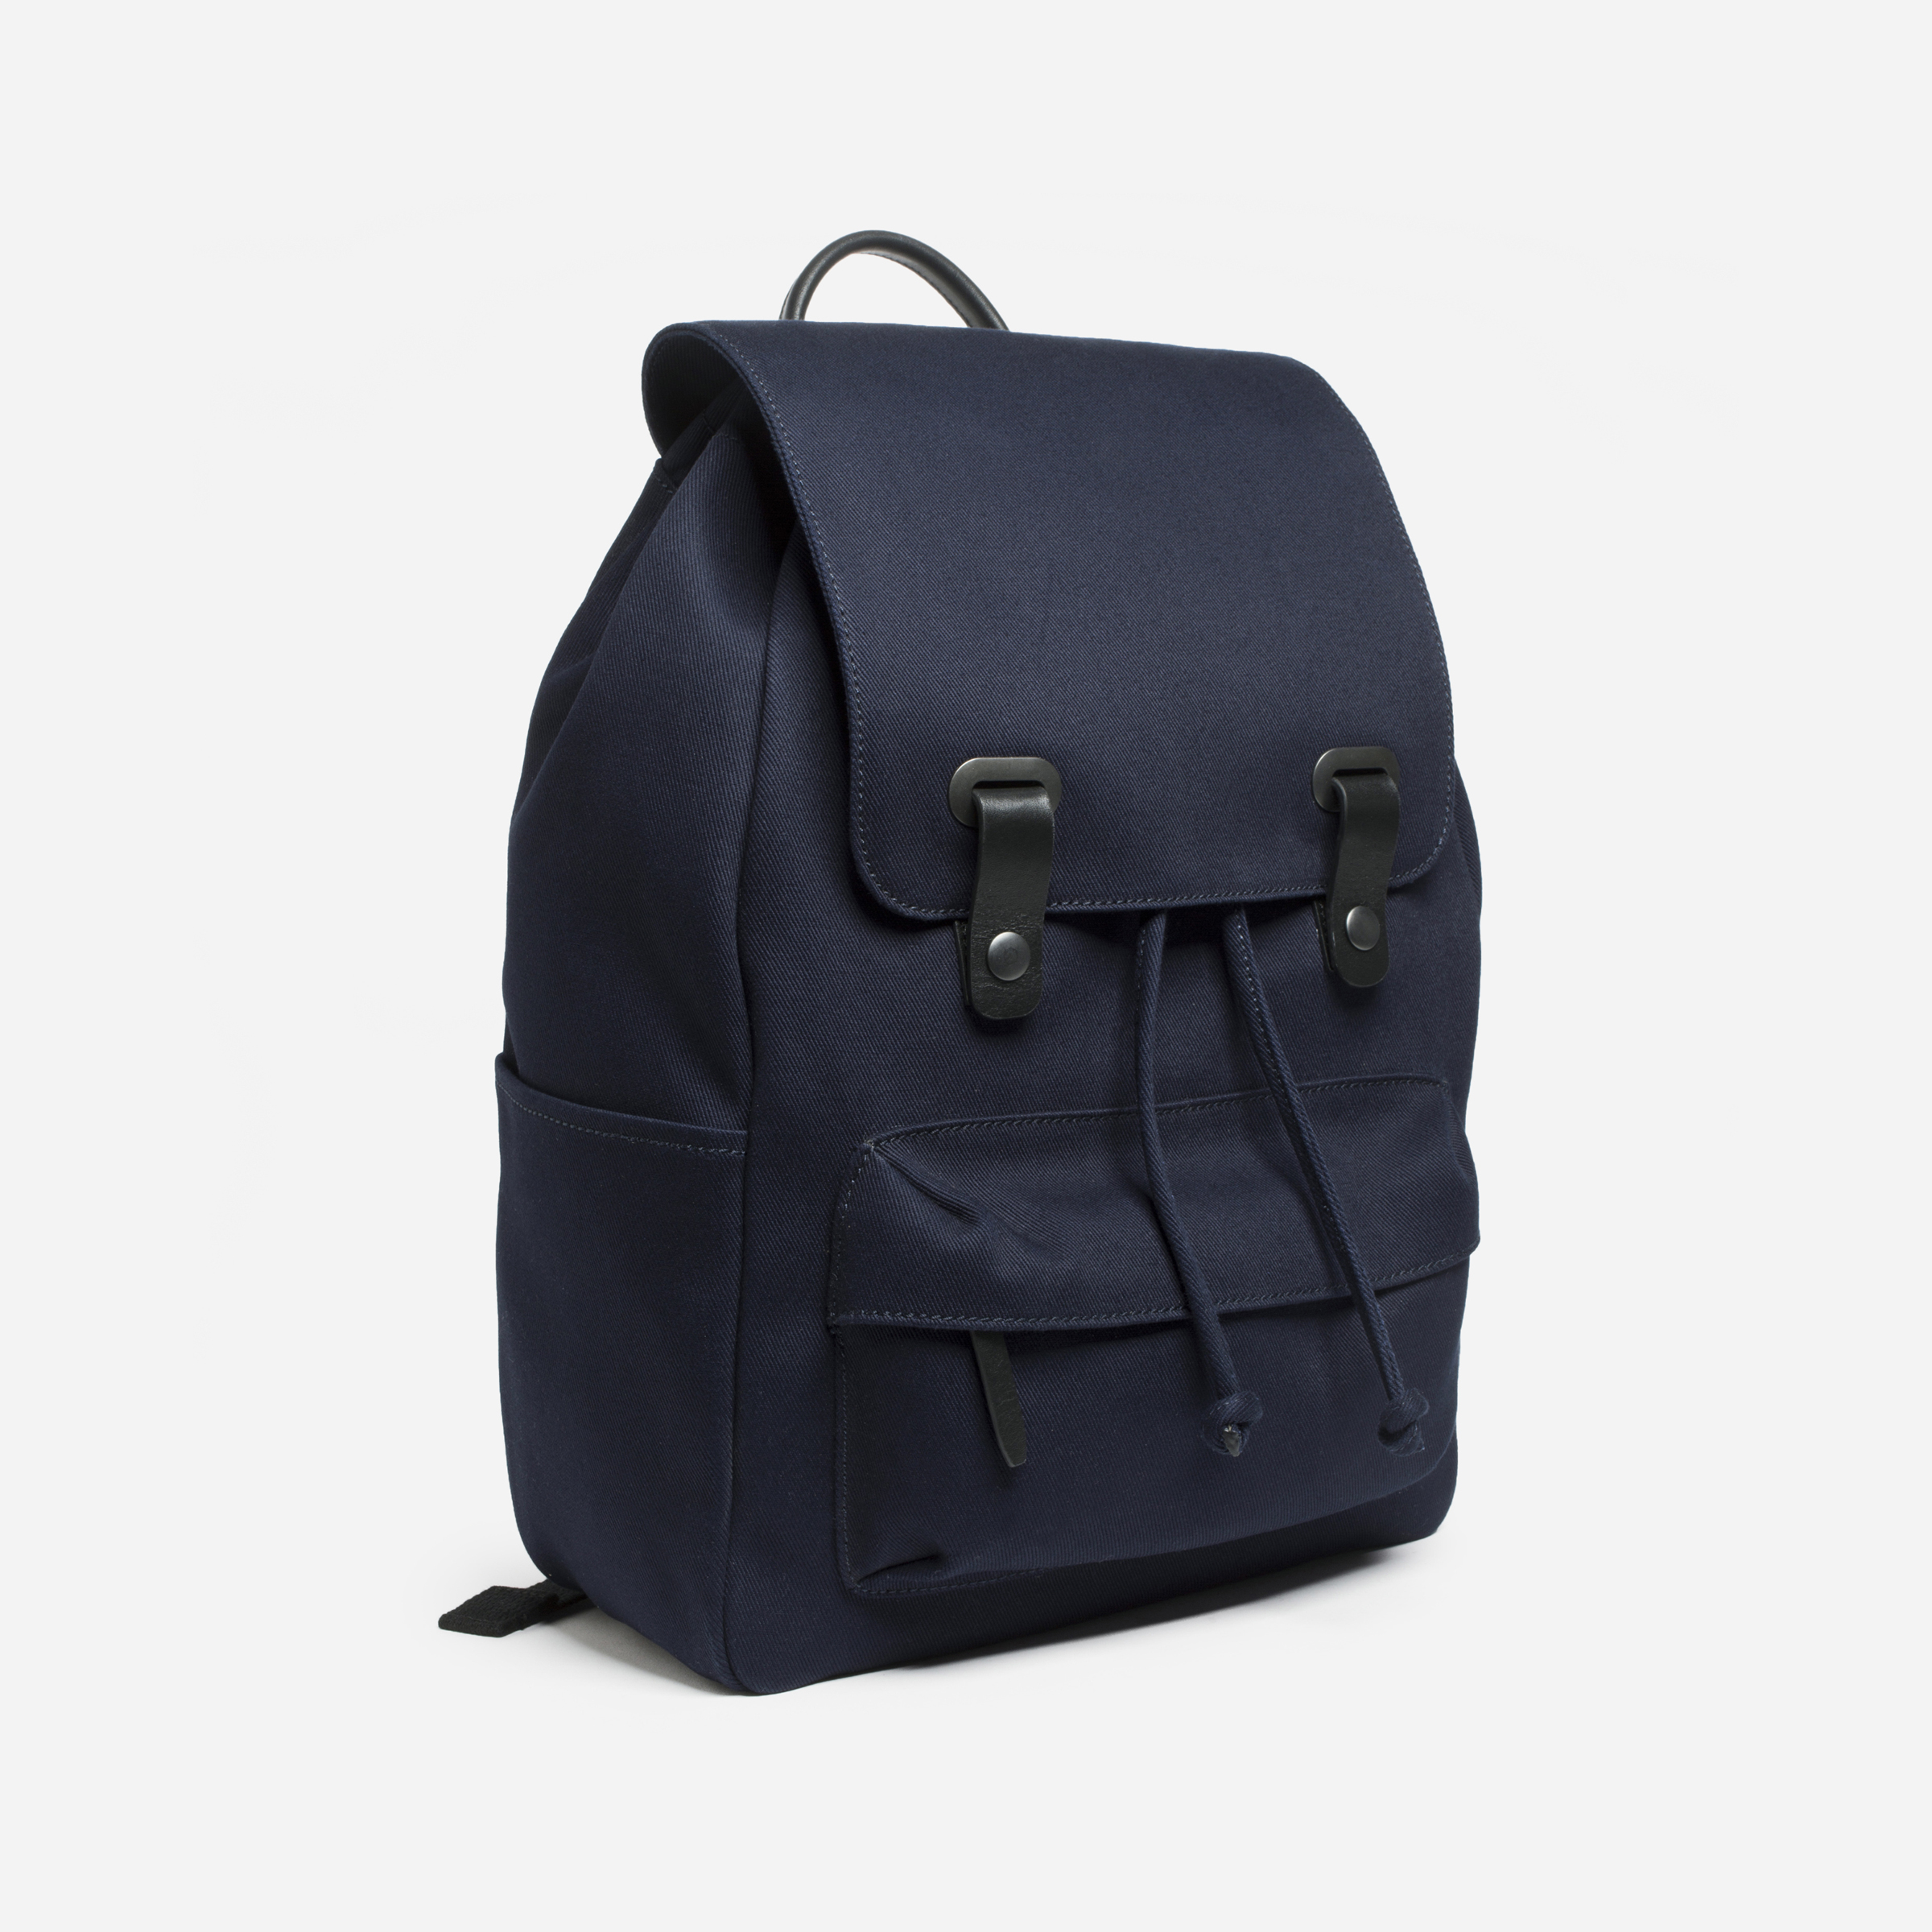 The Twill Backpack - Navy + Black Leather